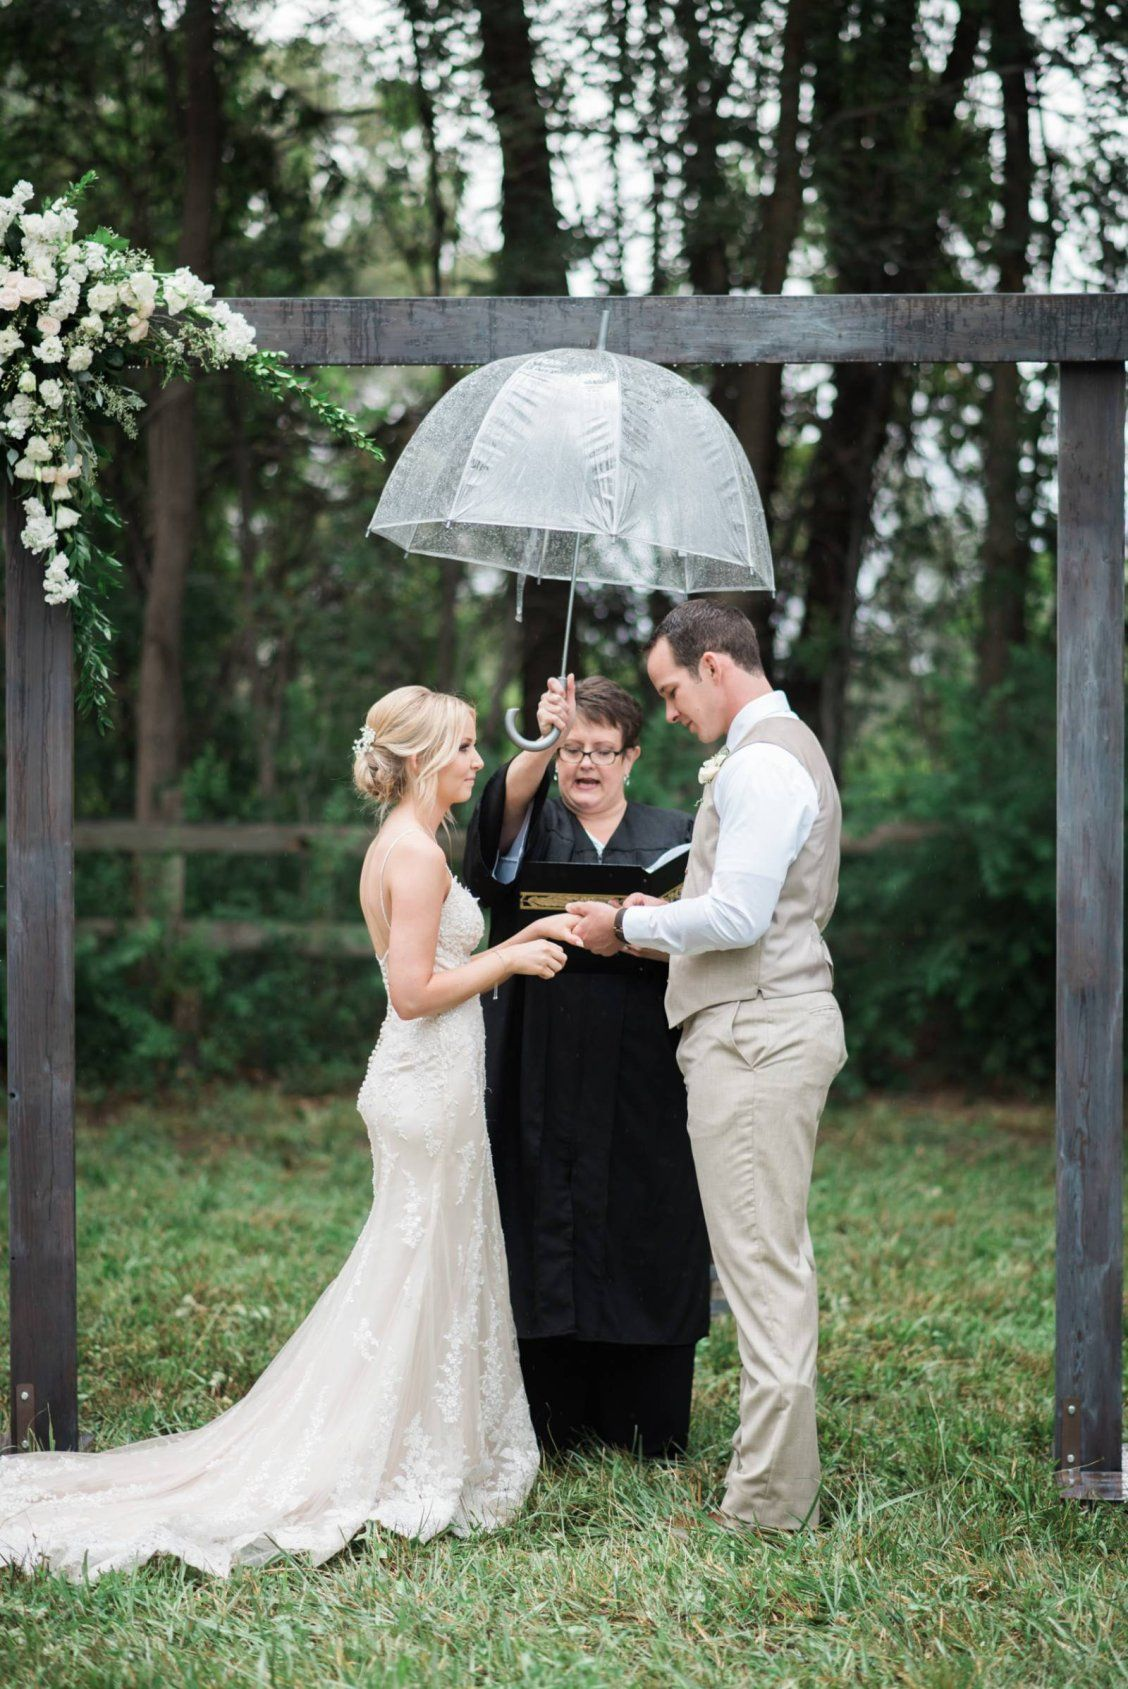 50+ New mexico mountain wedding venues ideas in 2021